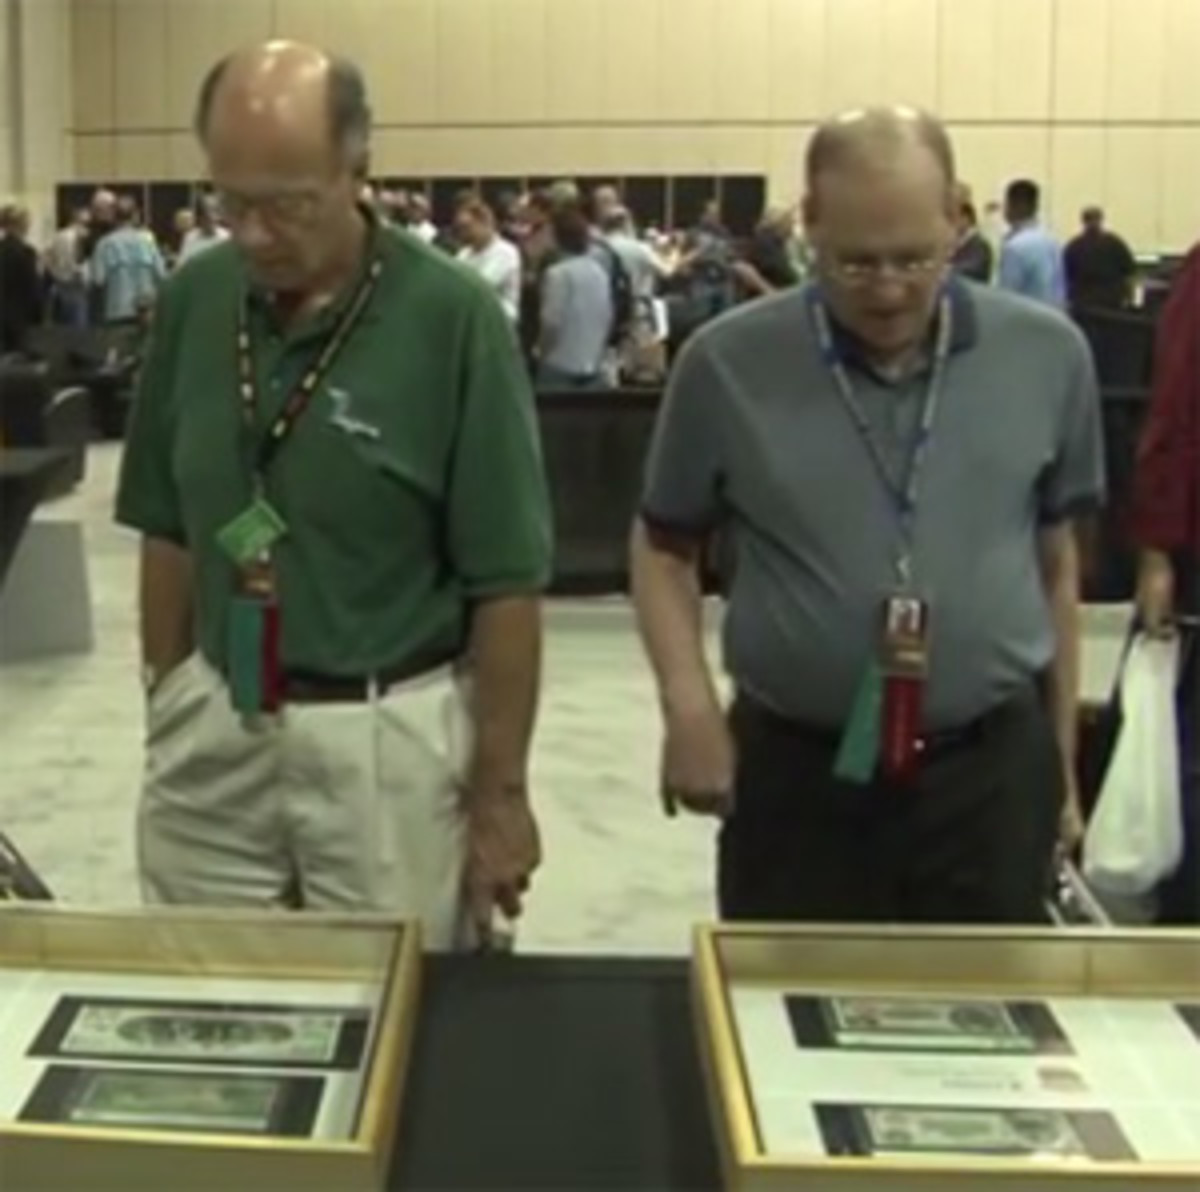 Attendees of the 2014 International Paper Money Show examine an exhibit. (Image courtesy https://coinweek.com)